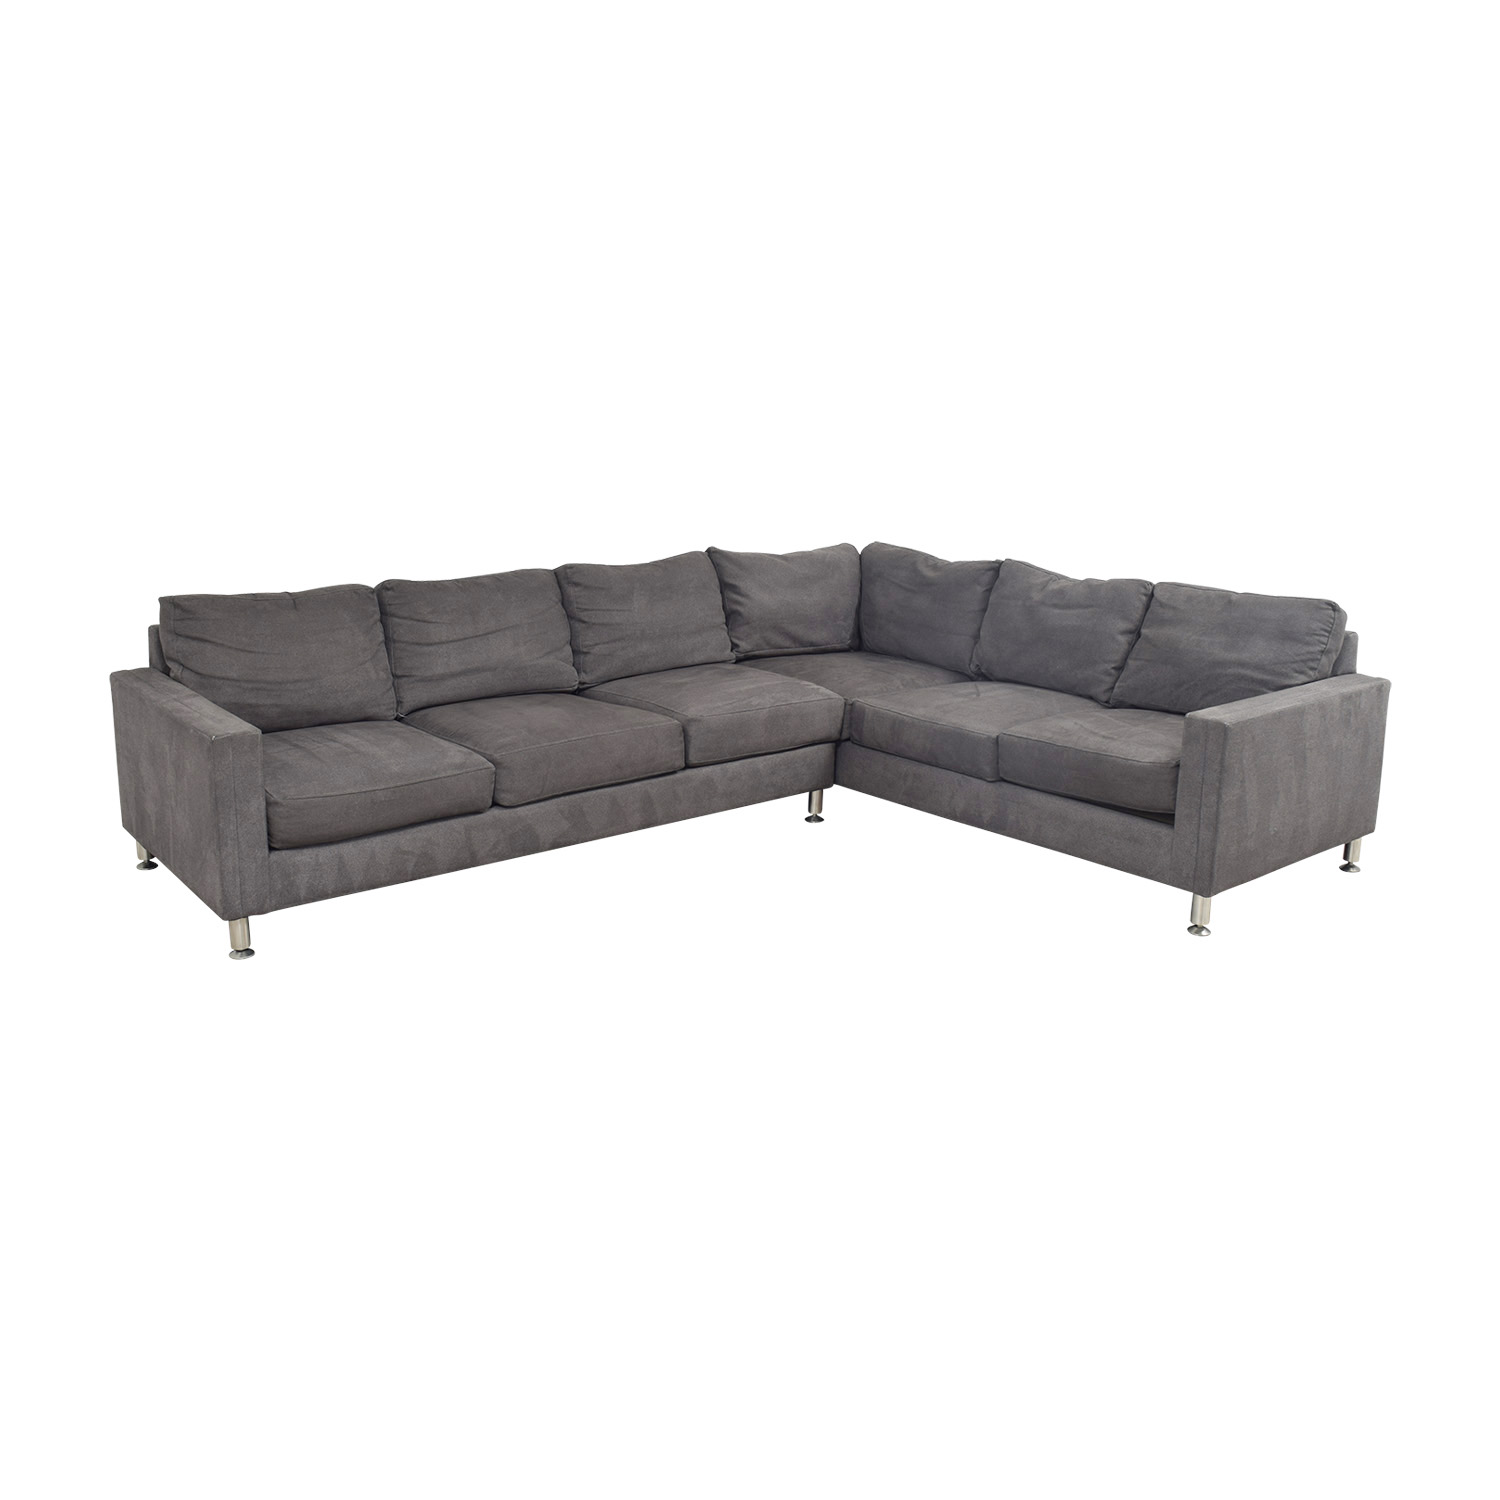 85 OFF  Safavieh Safavieh Grey LShaped Sectional  Sofas